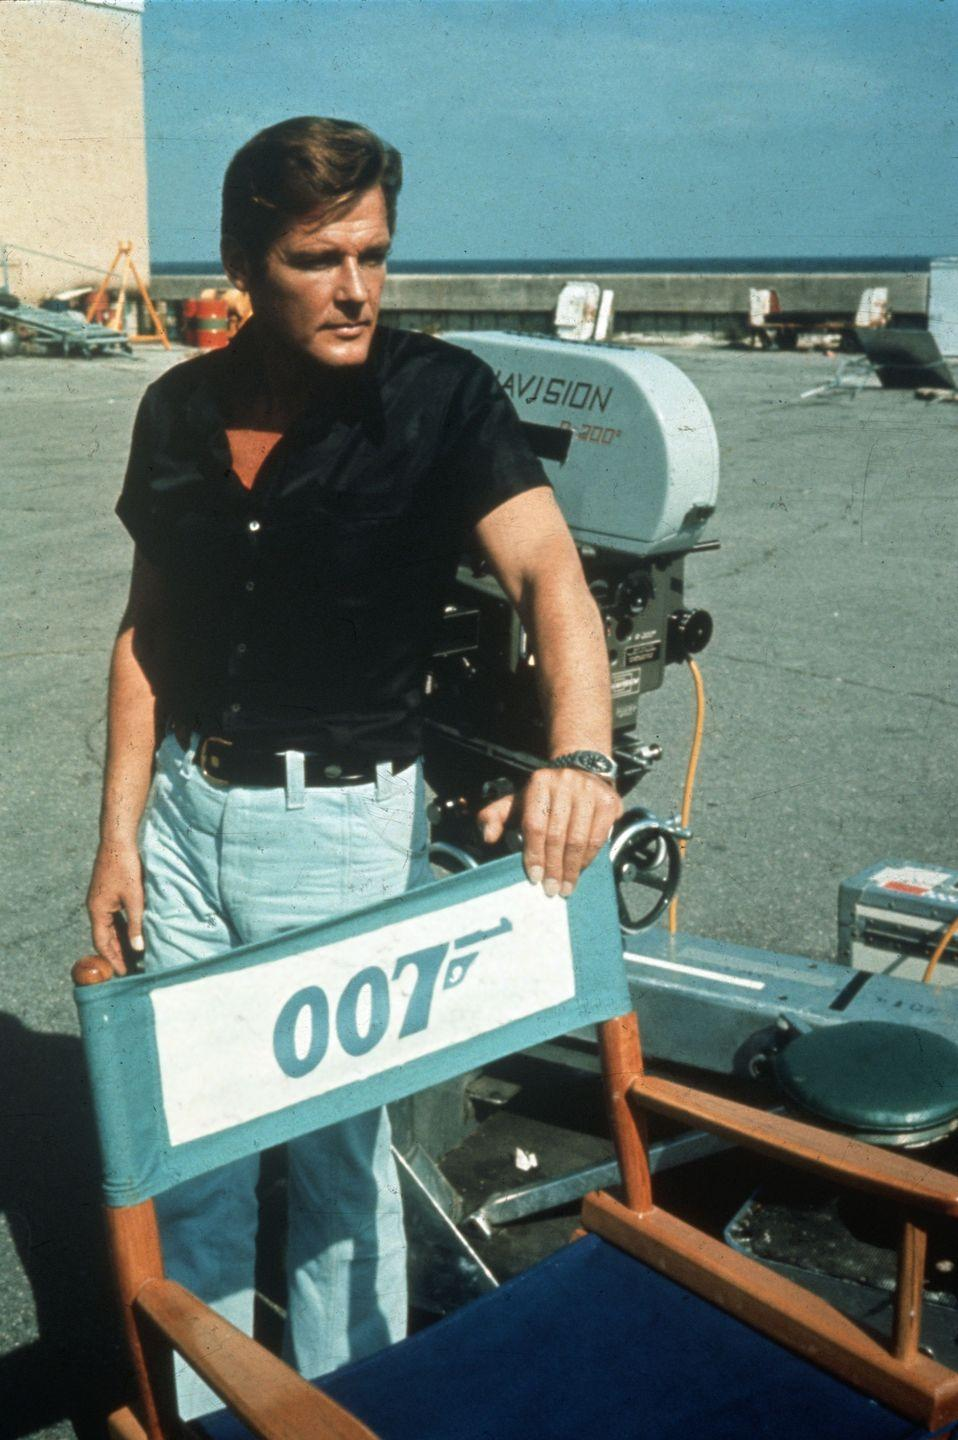 <p>Roger Moore, who portrayed James Bond in Live and Let Die, is seen on set. It was the eighth James Bond film for the franchise.</p>